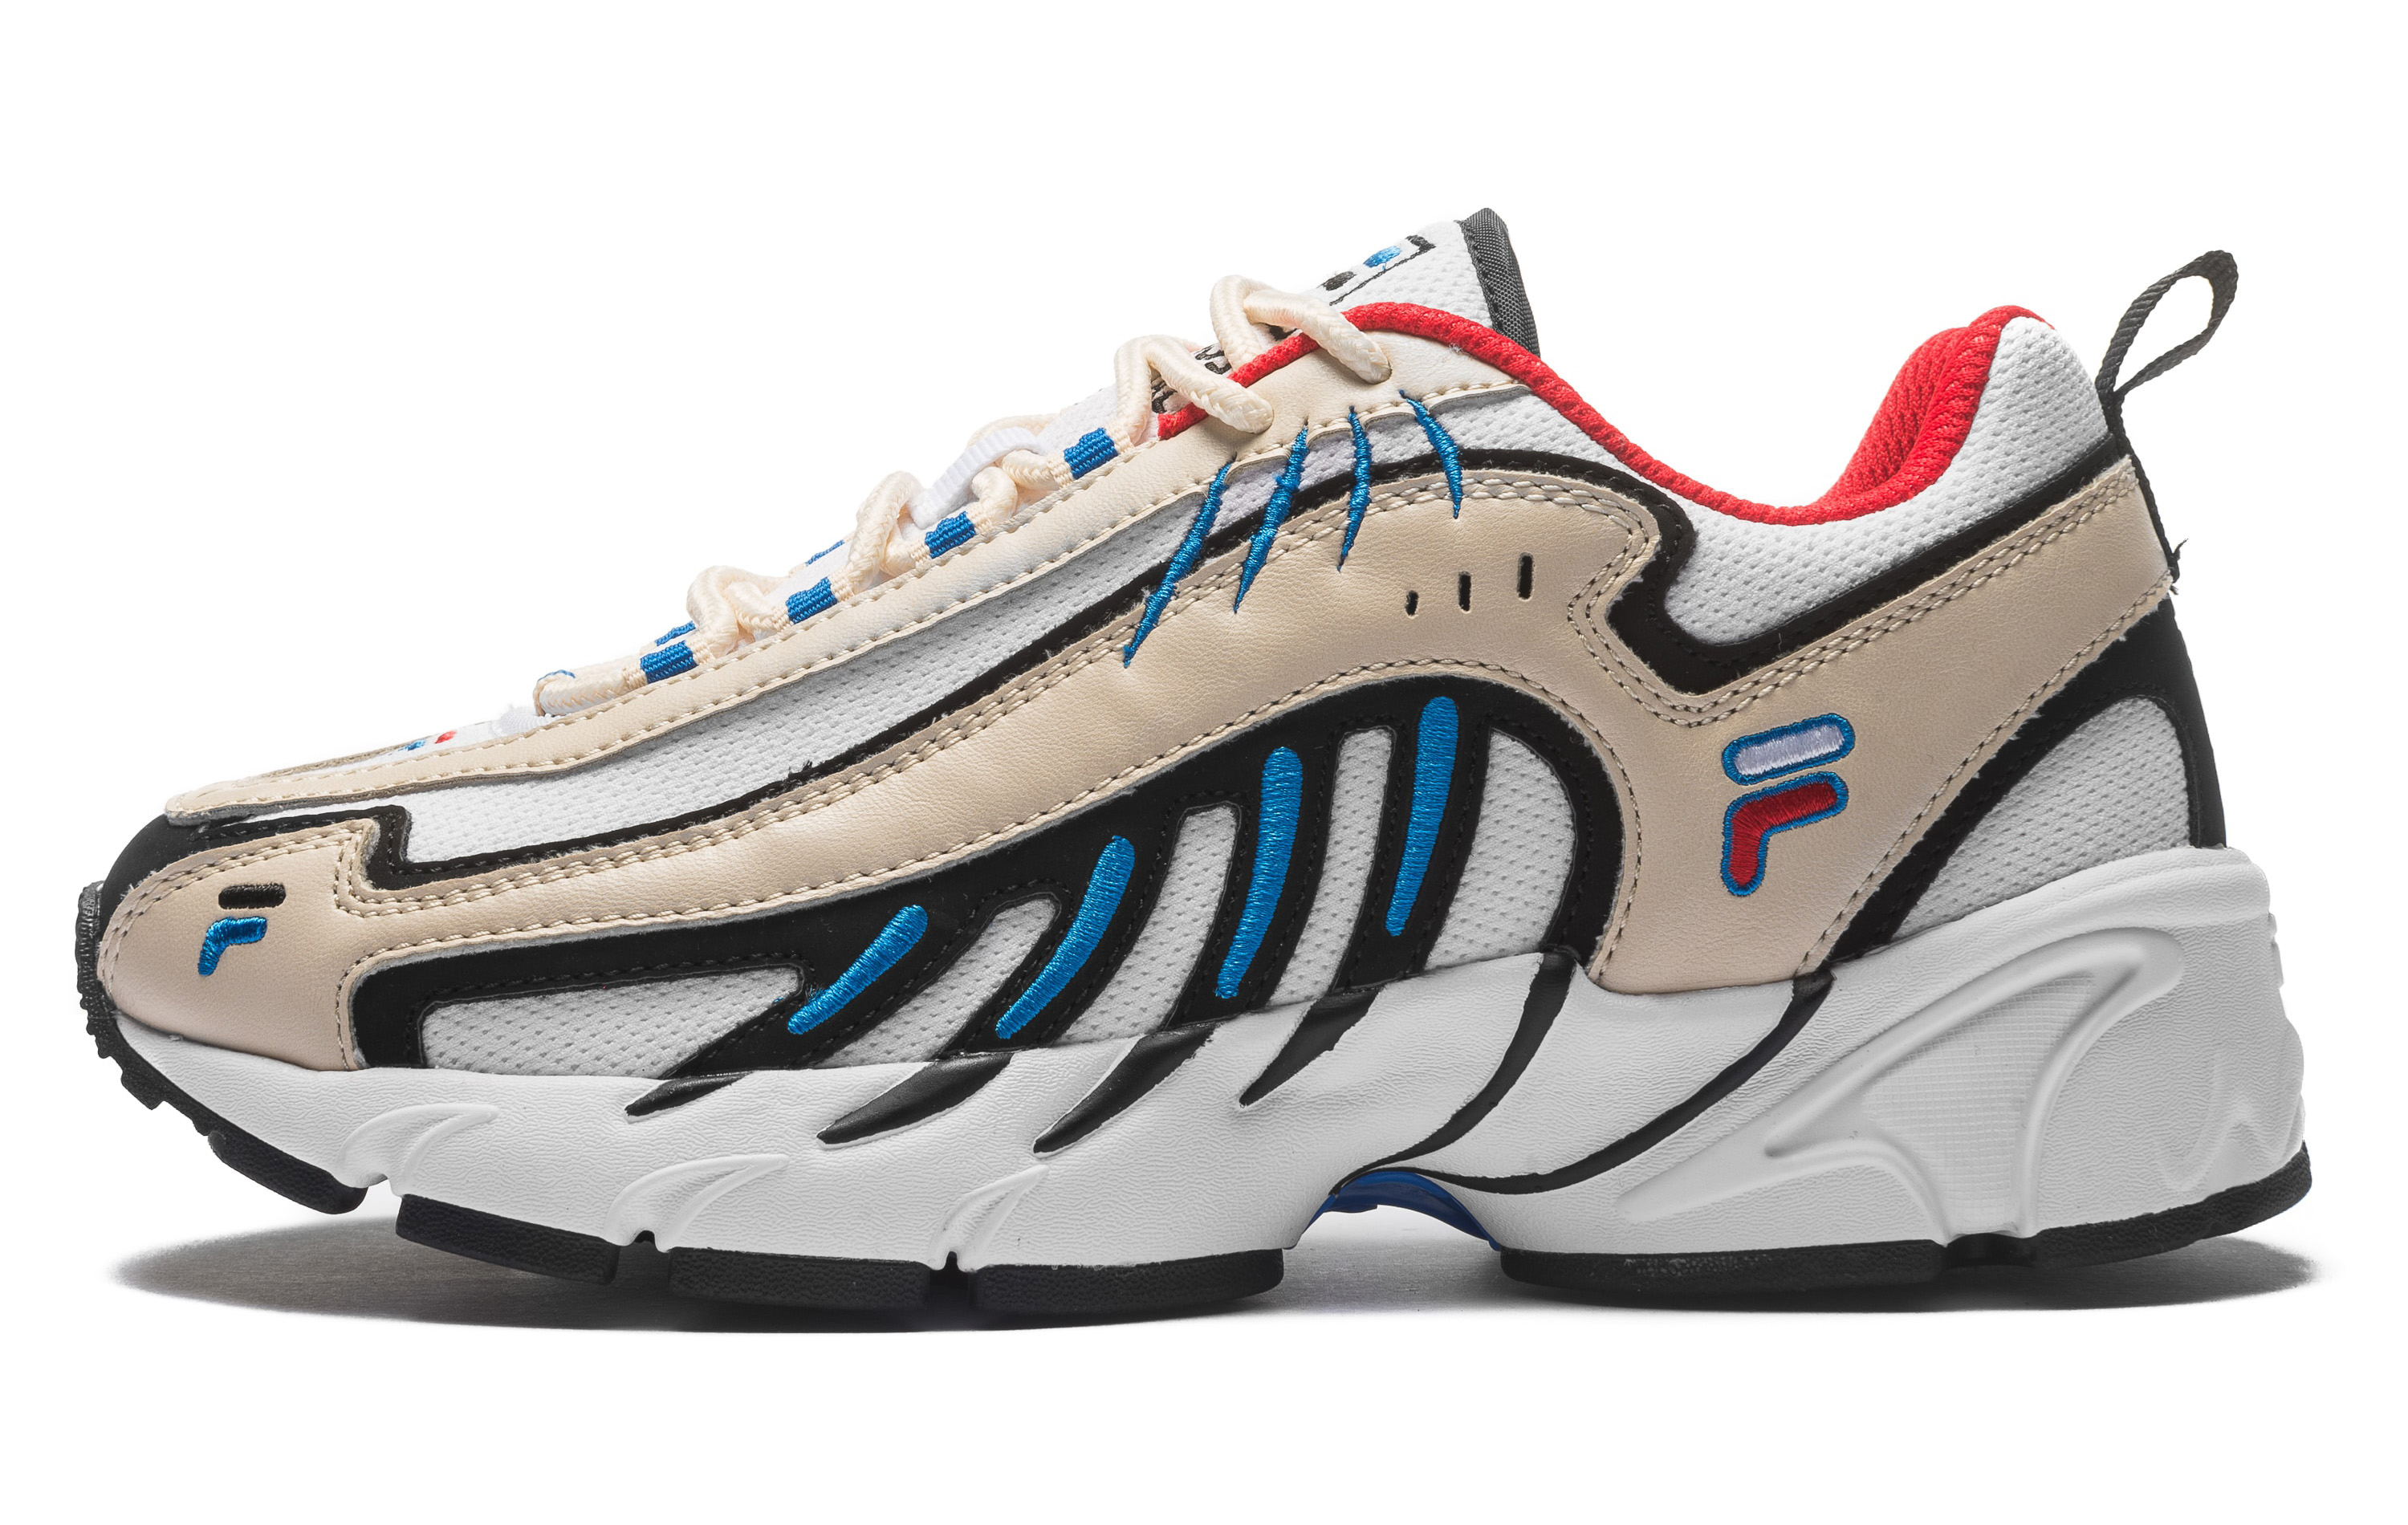 sneakers Archives | ELLE Norge